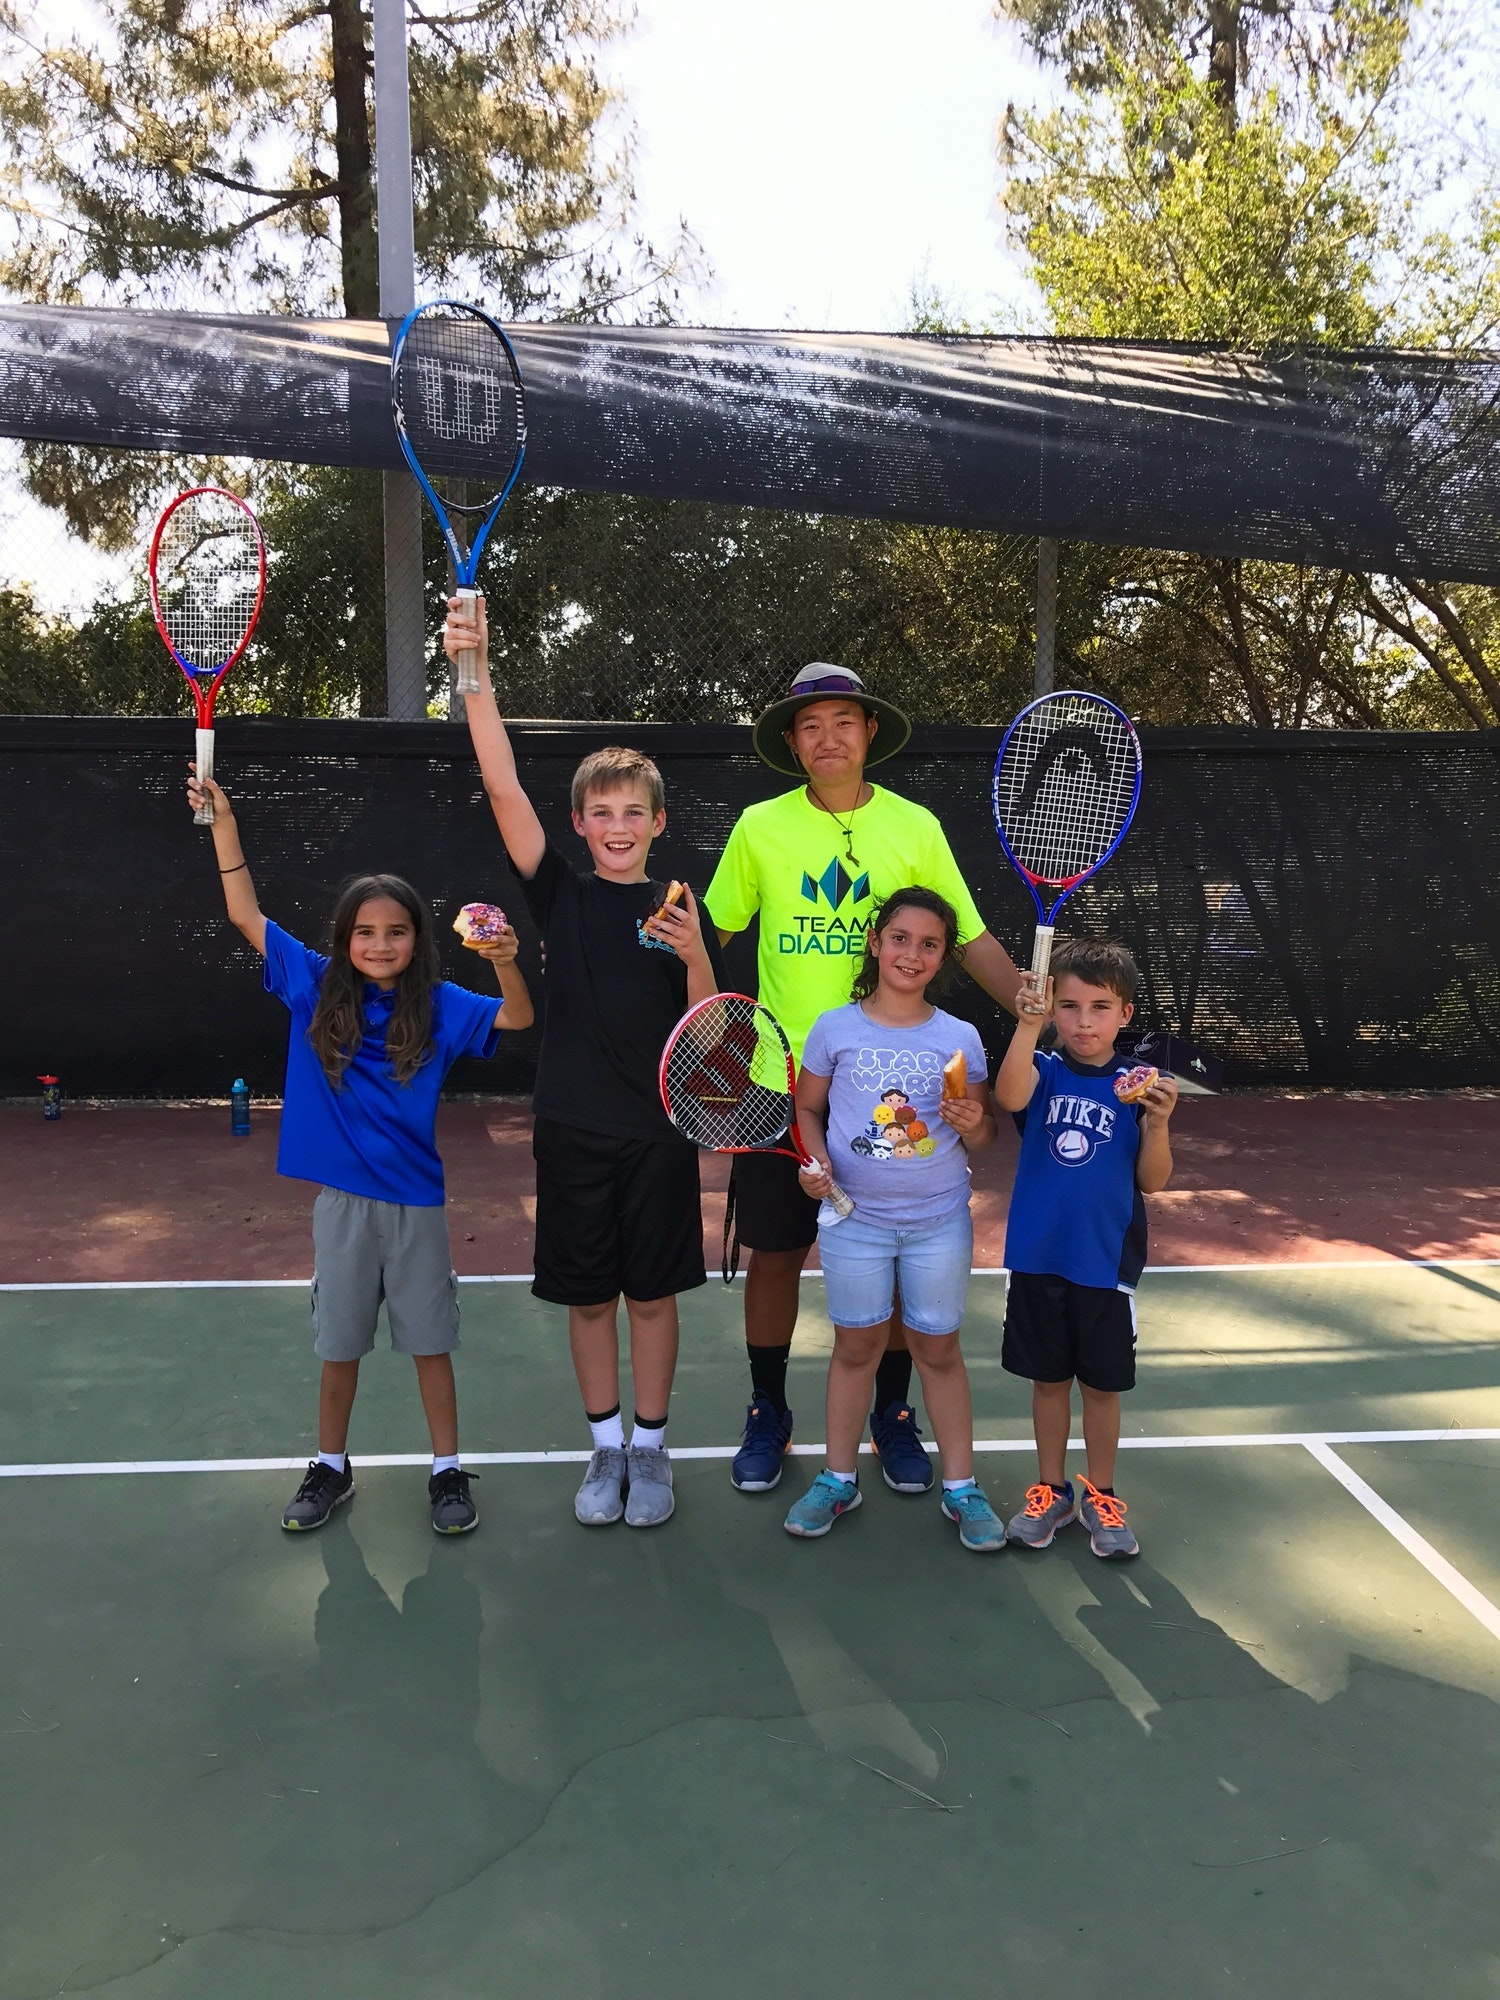 Benson K. teaches tennis lessons in Corona, CA